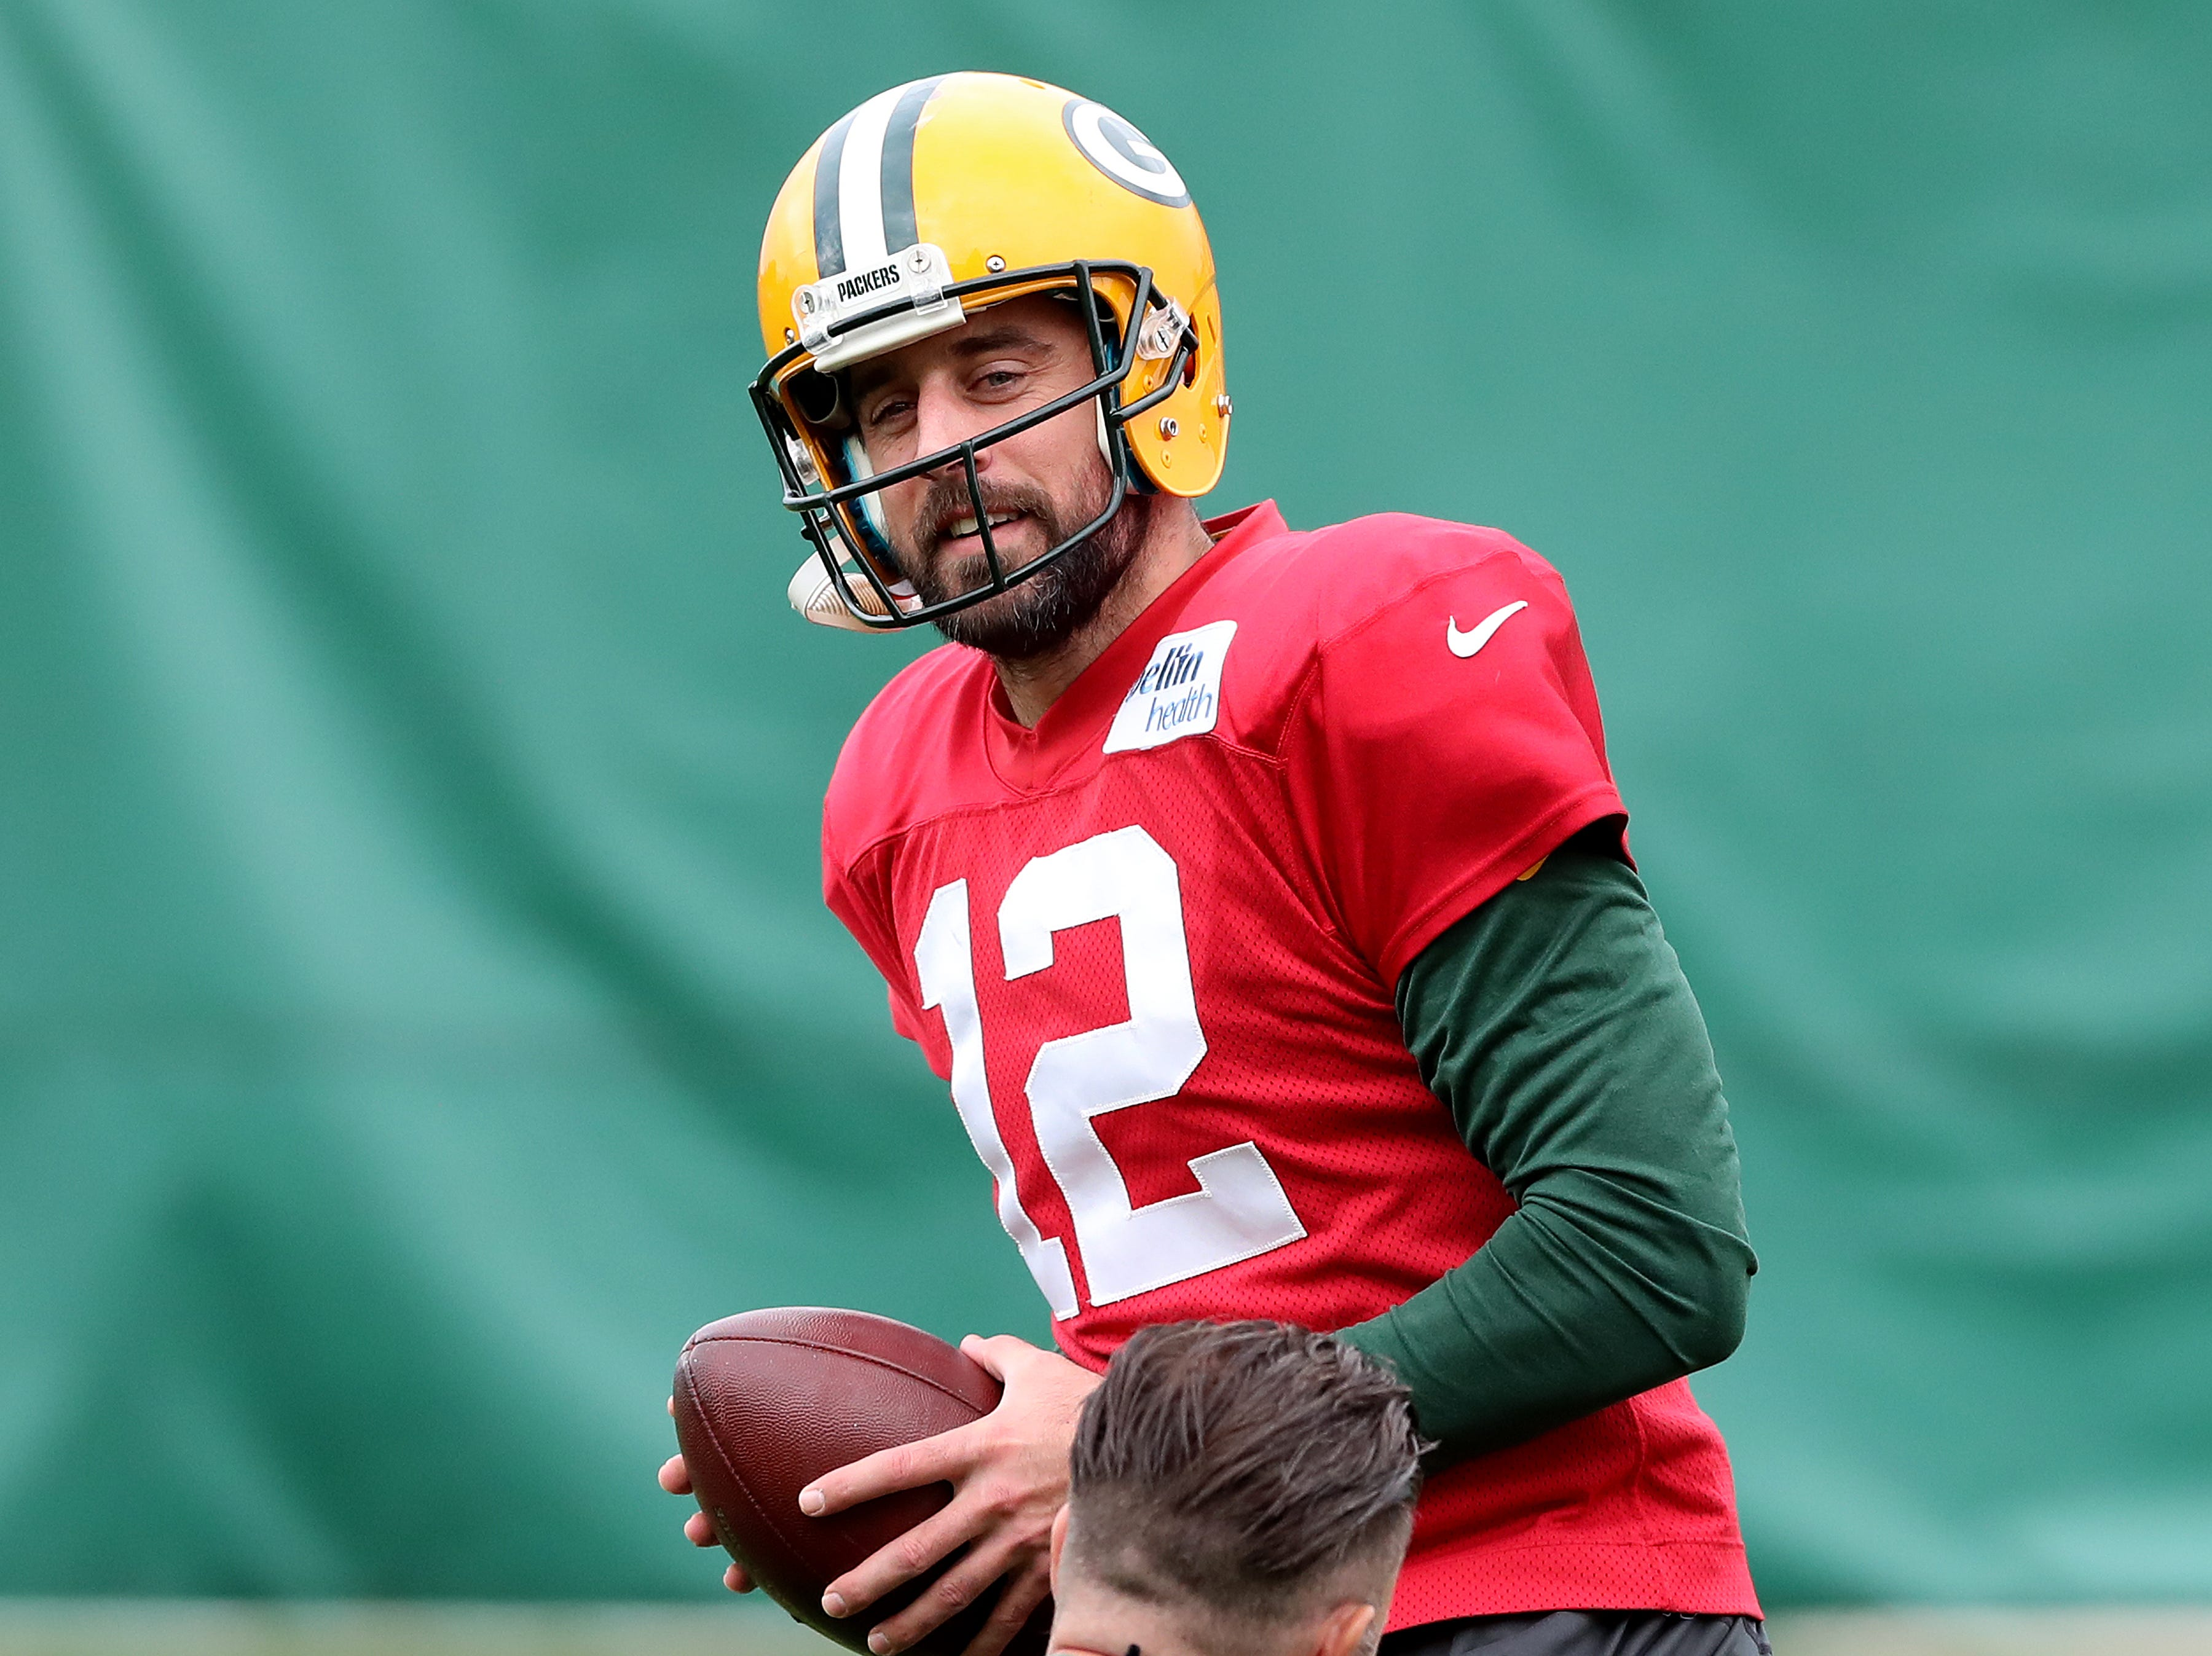 Green Bay Packers quarterback Aaron Rodgers (12) takes a practice snap during practice on Clarke Hinkle Field Thursday, September 27, 2018 in Ashwaubenon, Wis